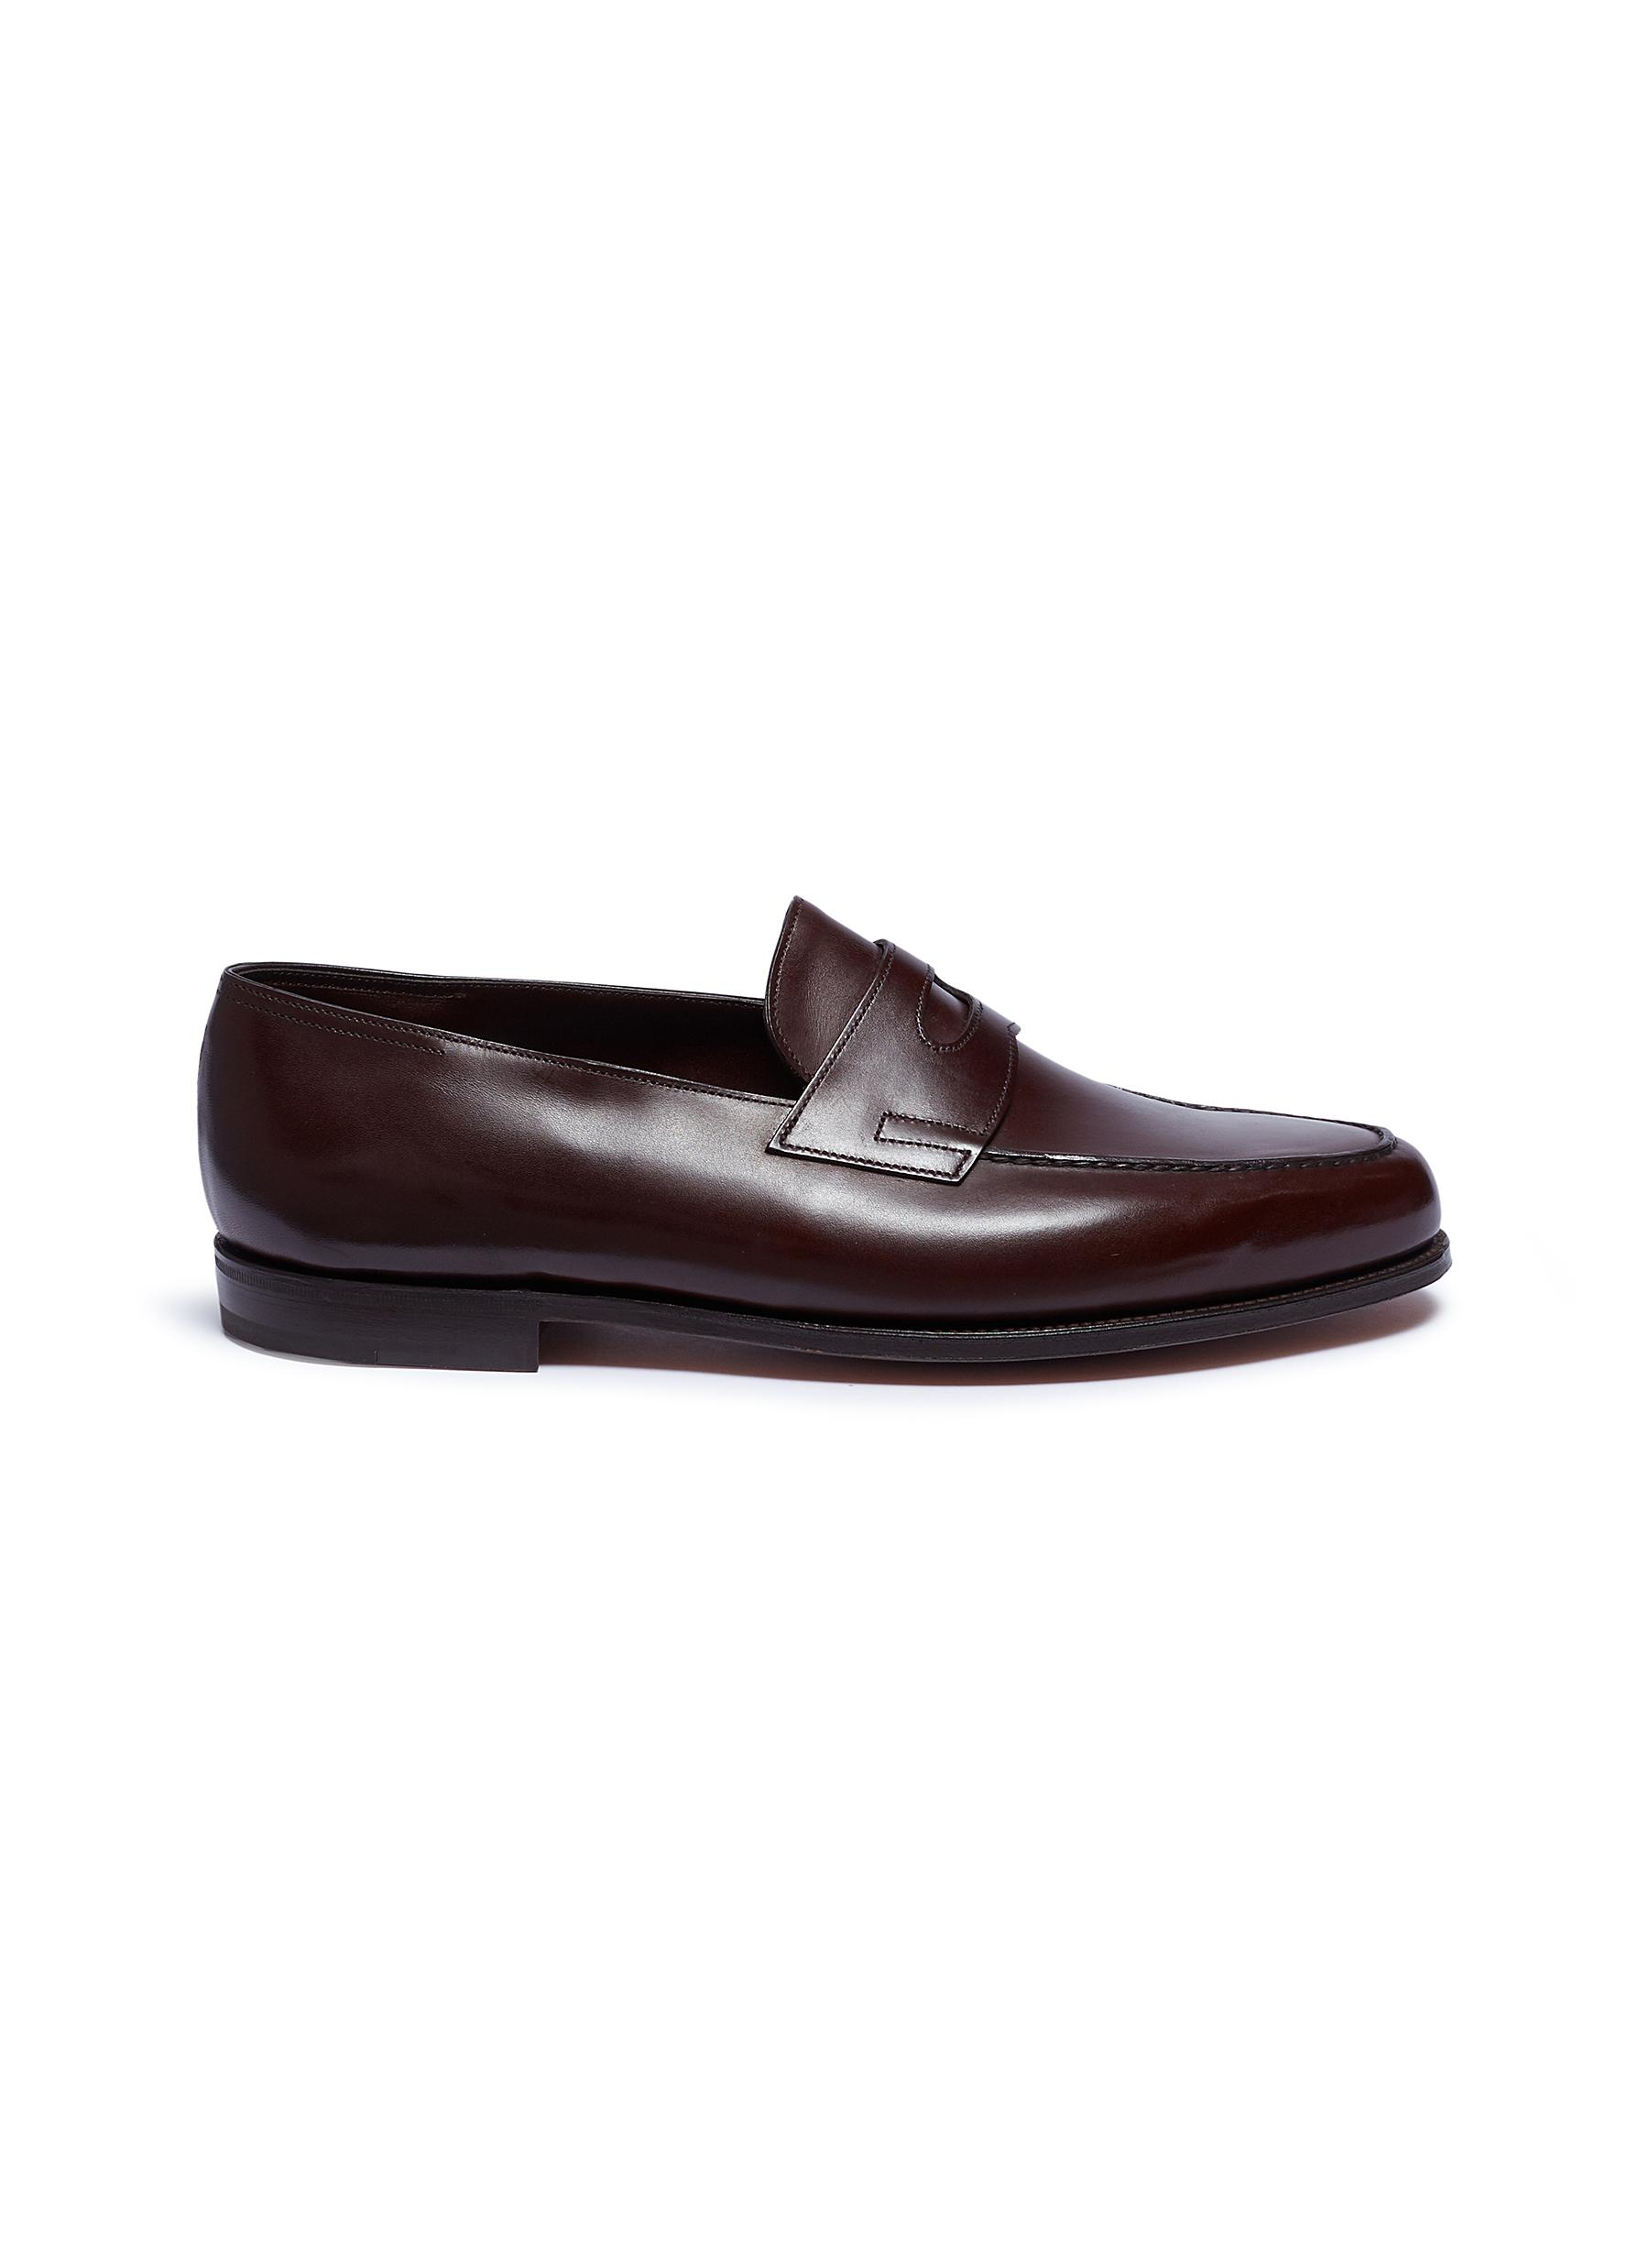 'Lopez' leather penny loafers